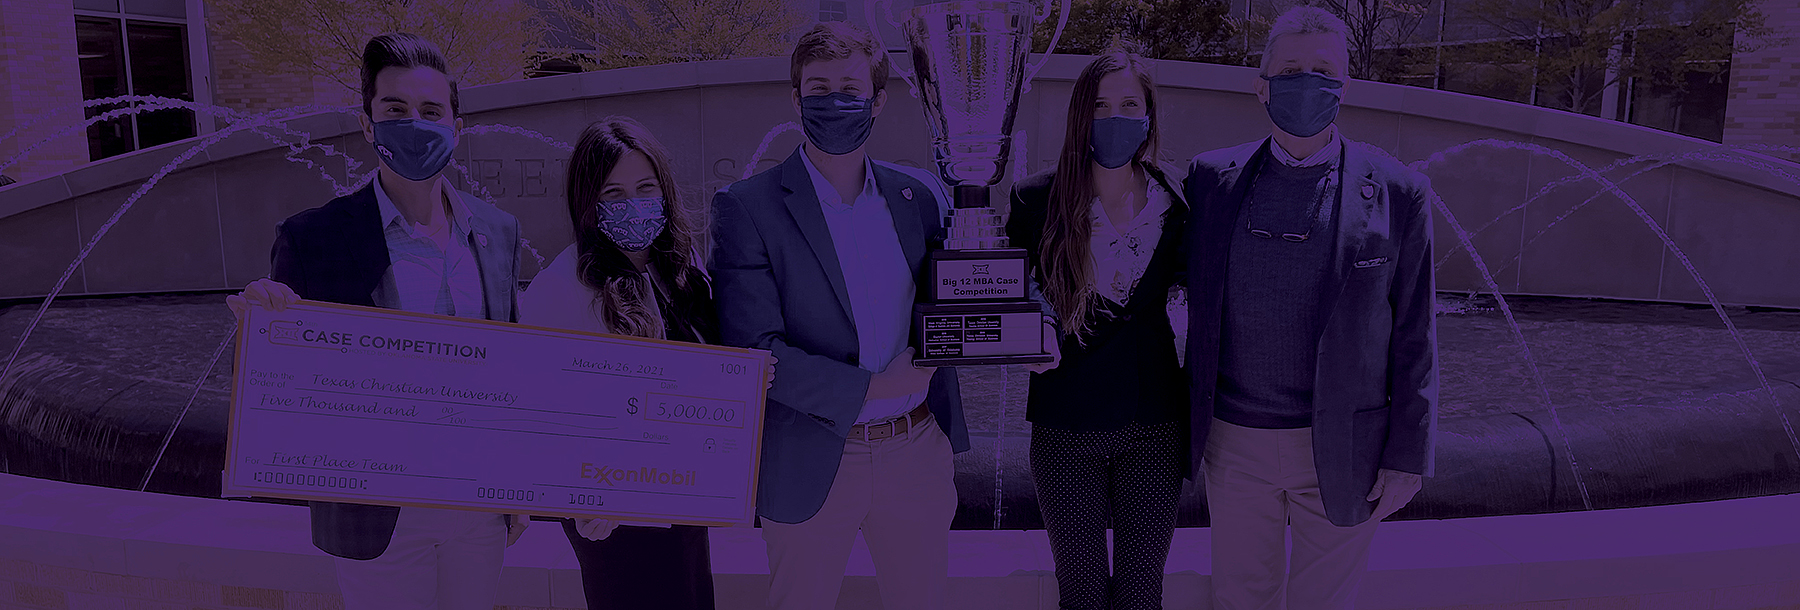 Section Image: Big 12 Case Competition winning team with check and trophy